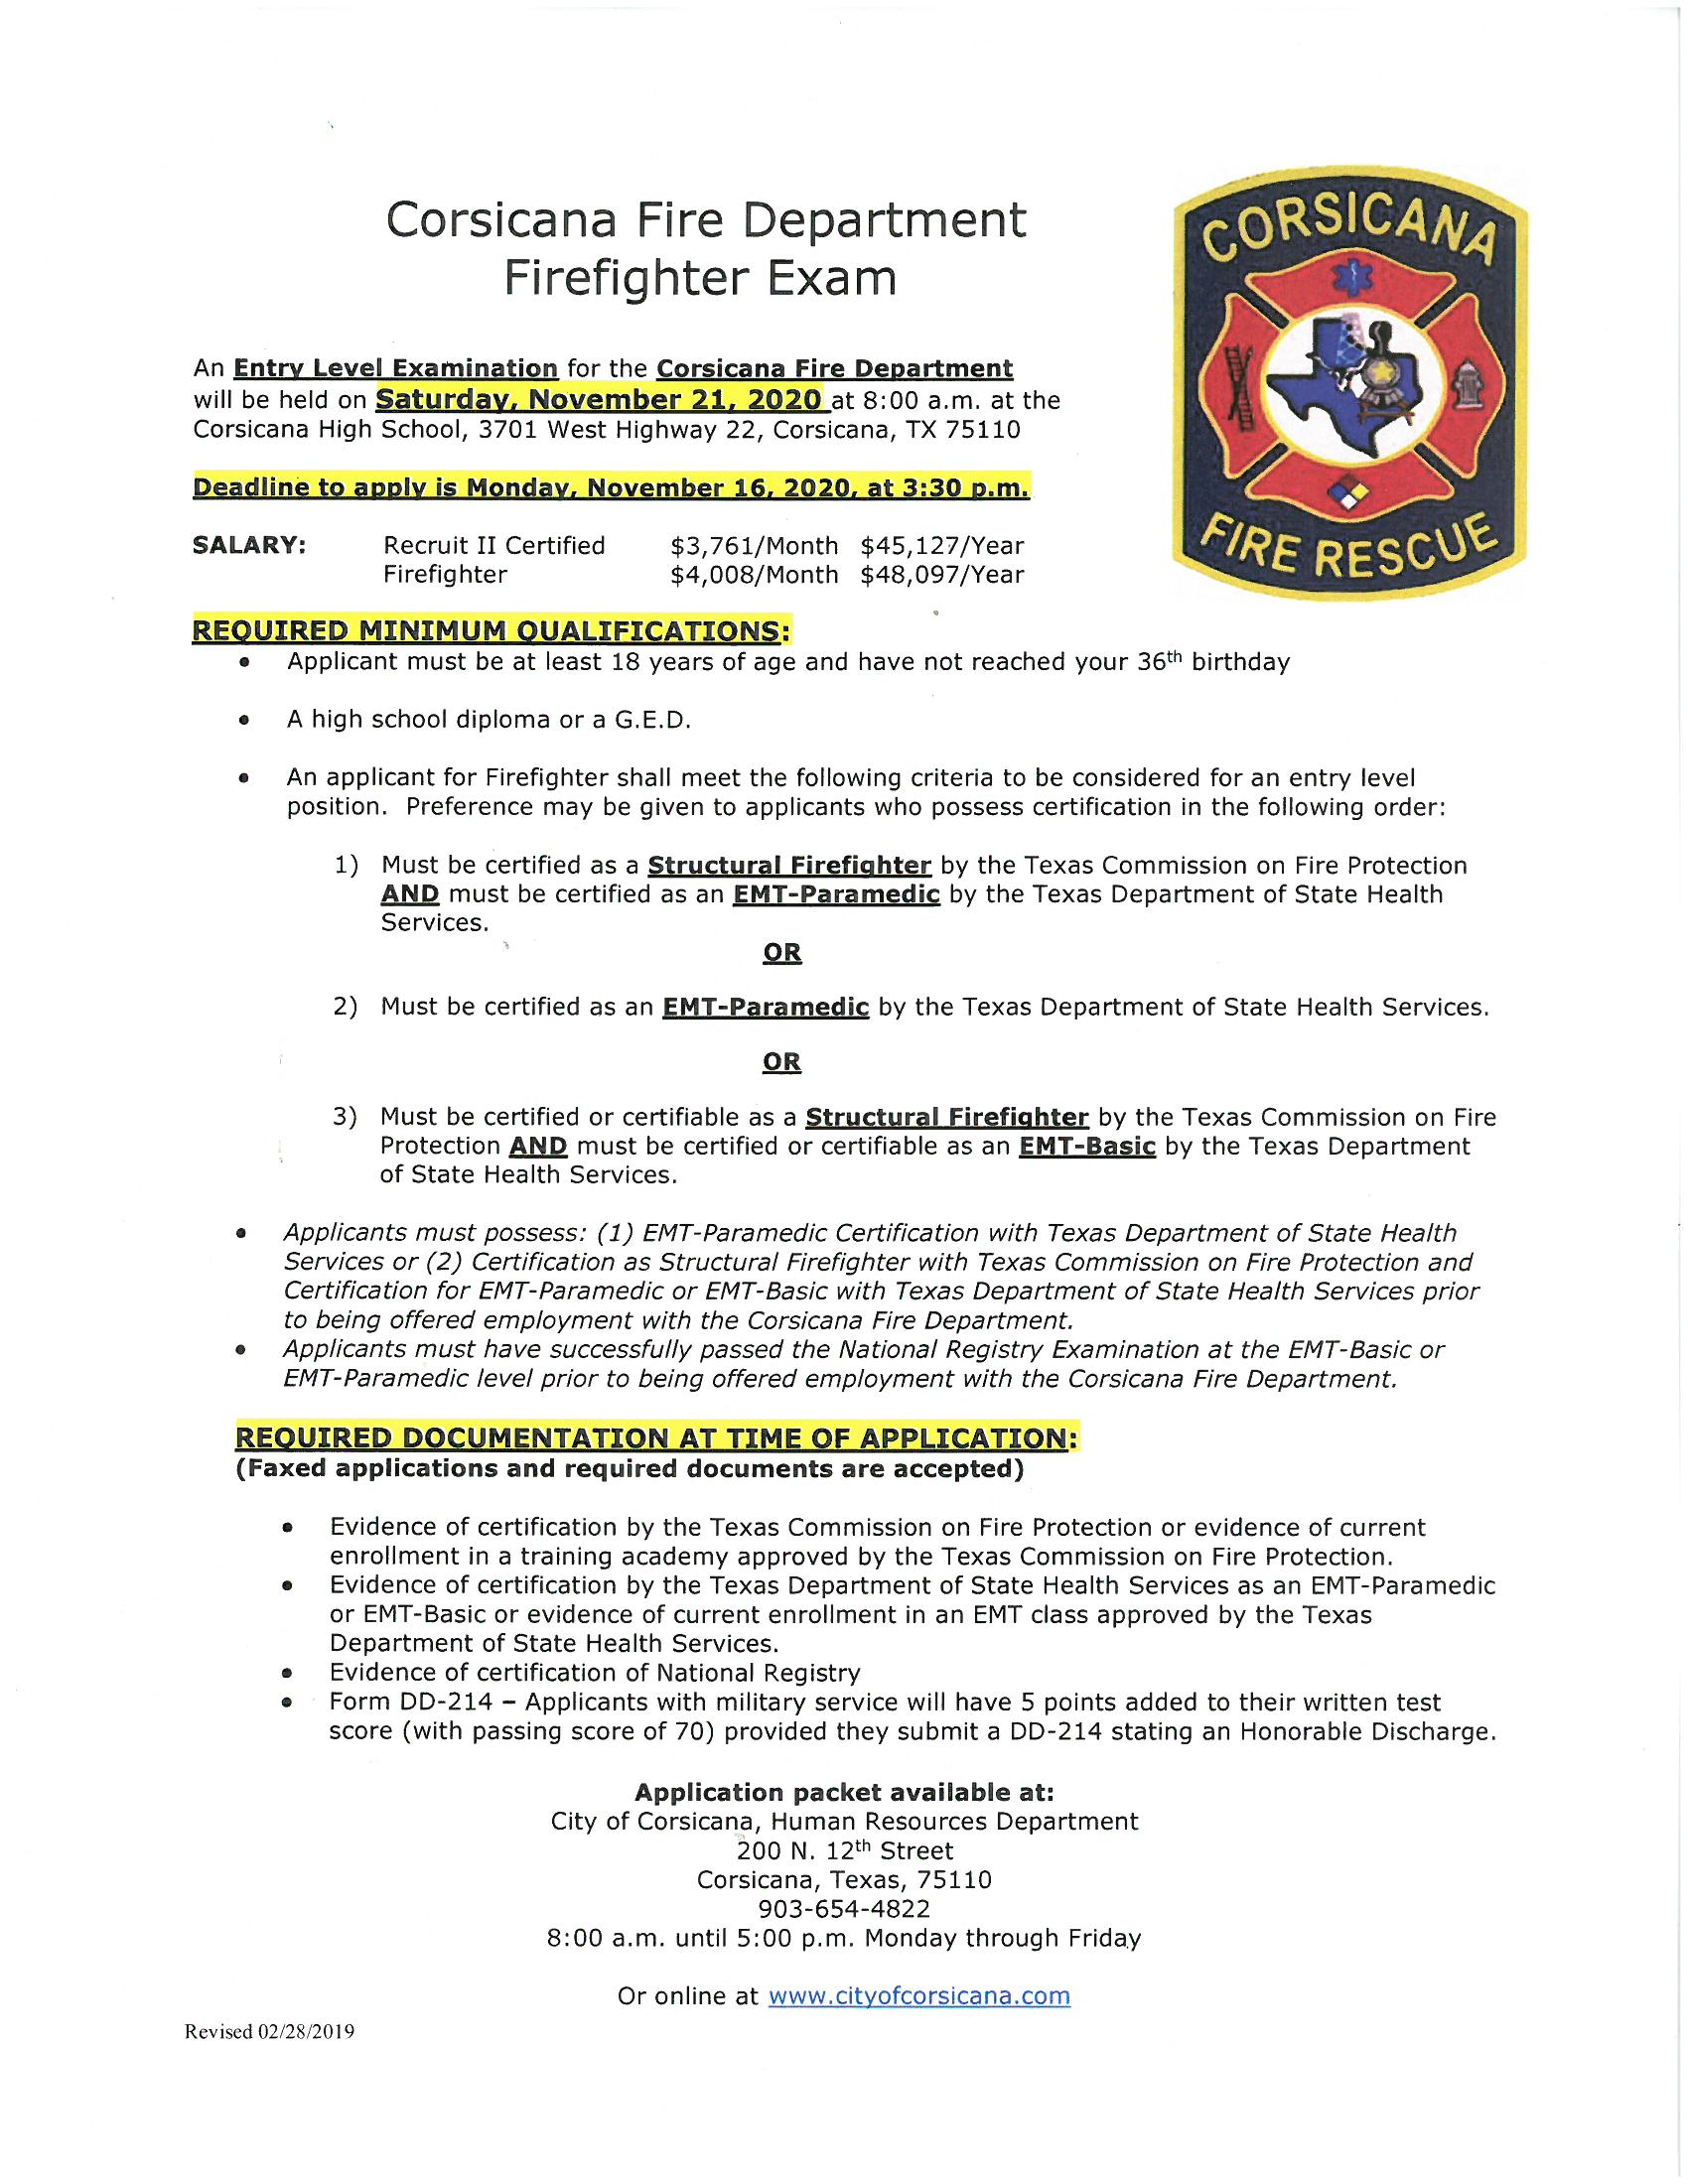 Nov. 21, 2020 Entry-Level Firefighter Test Posting and Pre-employment Application_Page_1